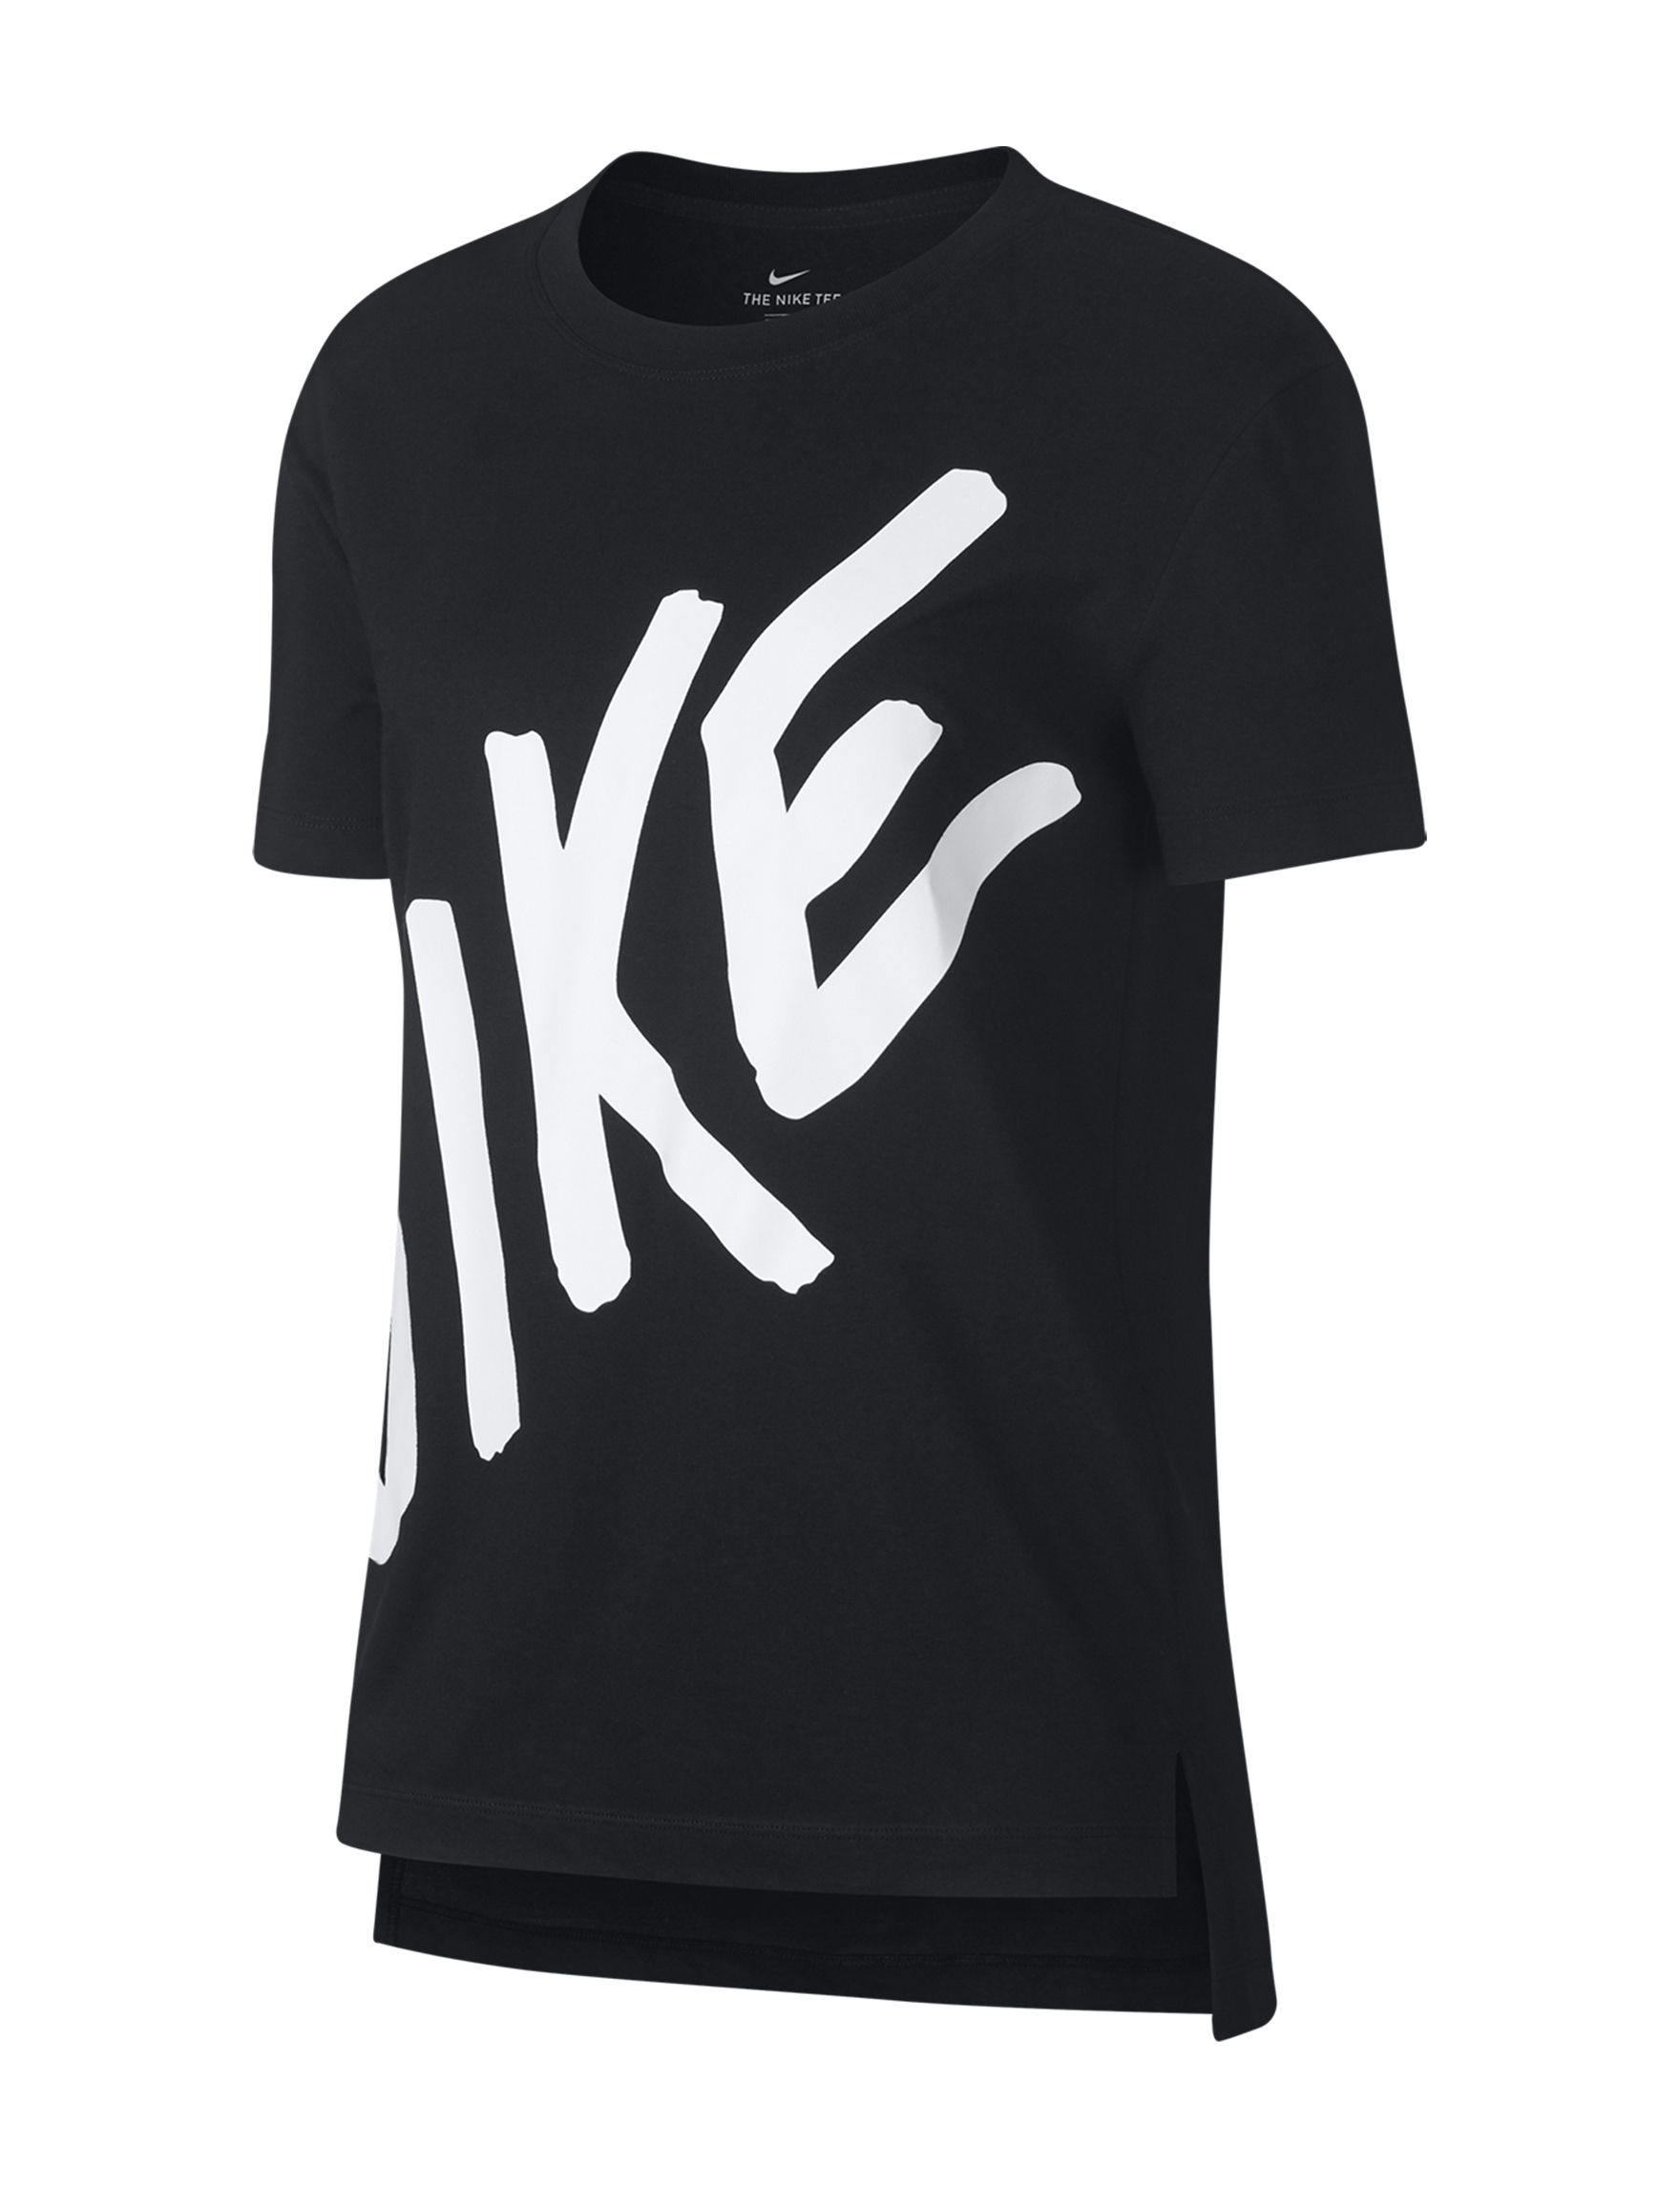 Nike Charcoal Tees & Tanks